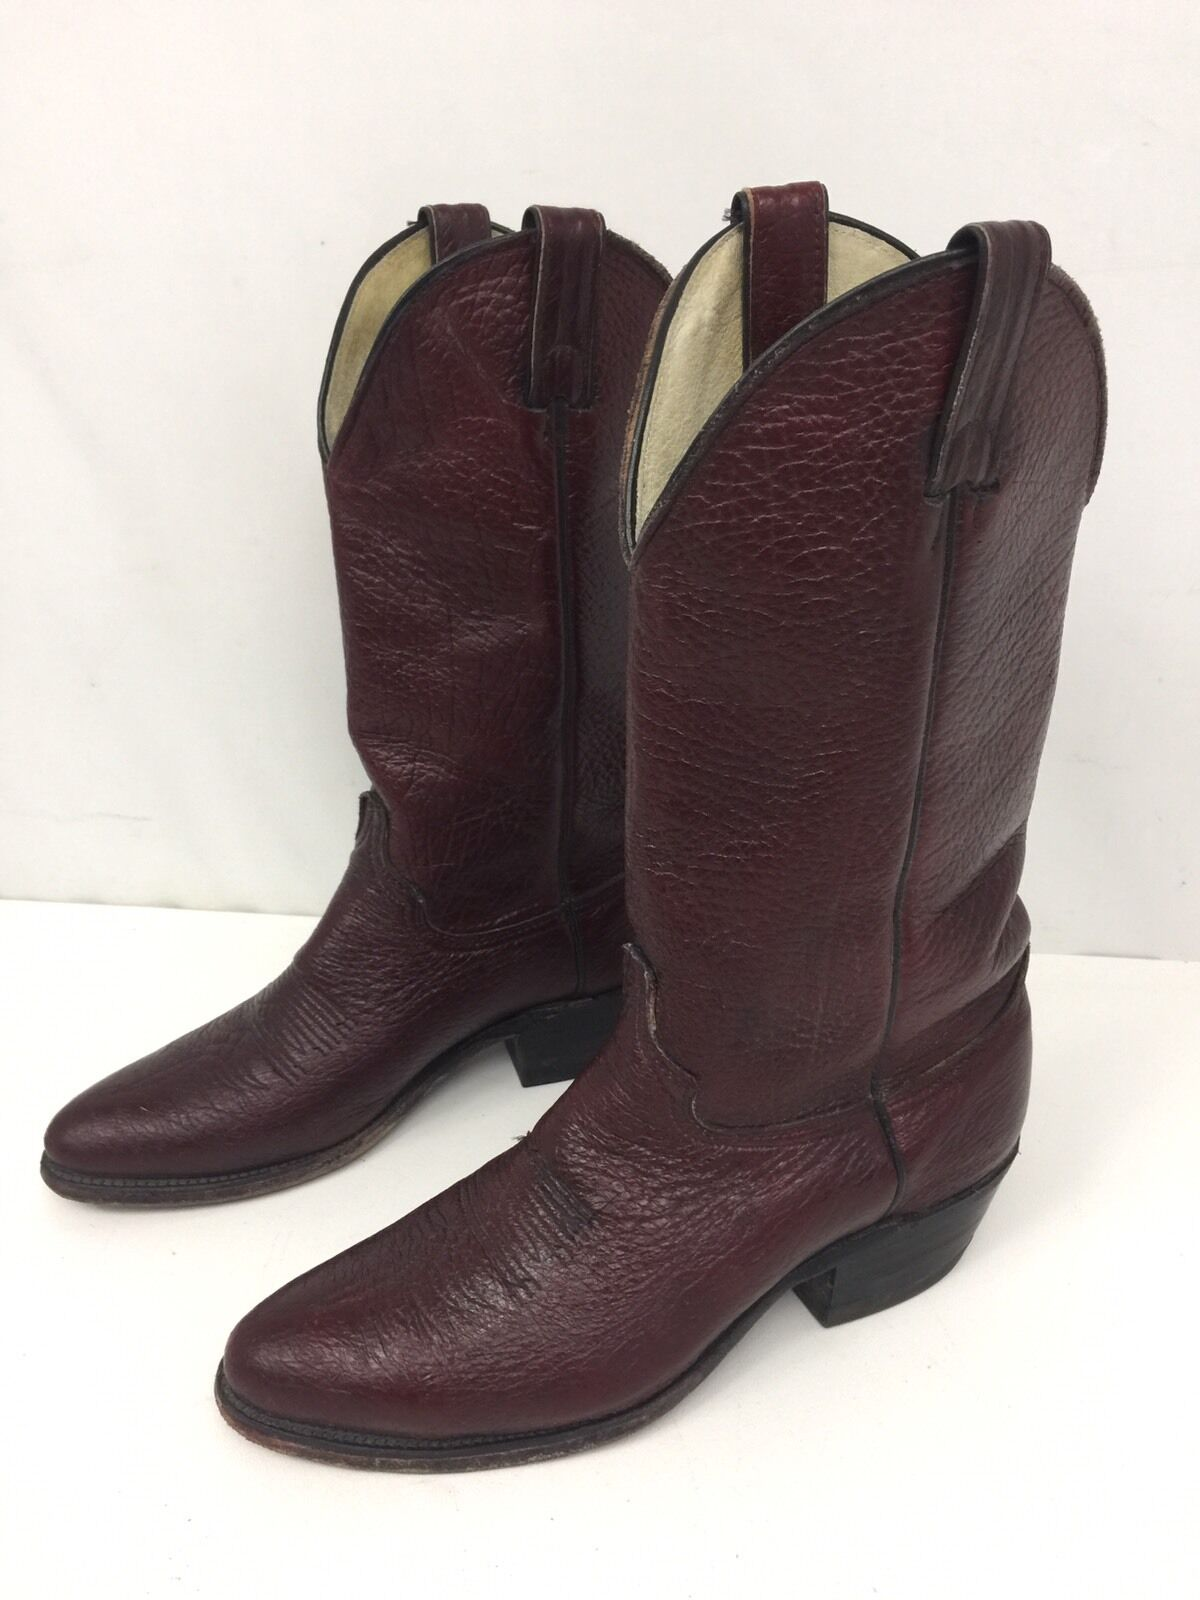 Men's Abilene Burgundy Leather Cowboy Boots Size 8 D  In Excellent Condition USA